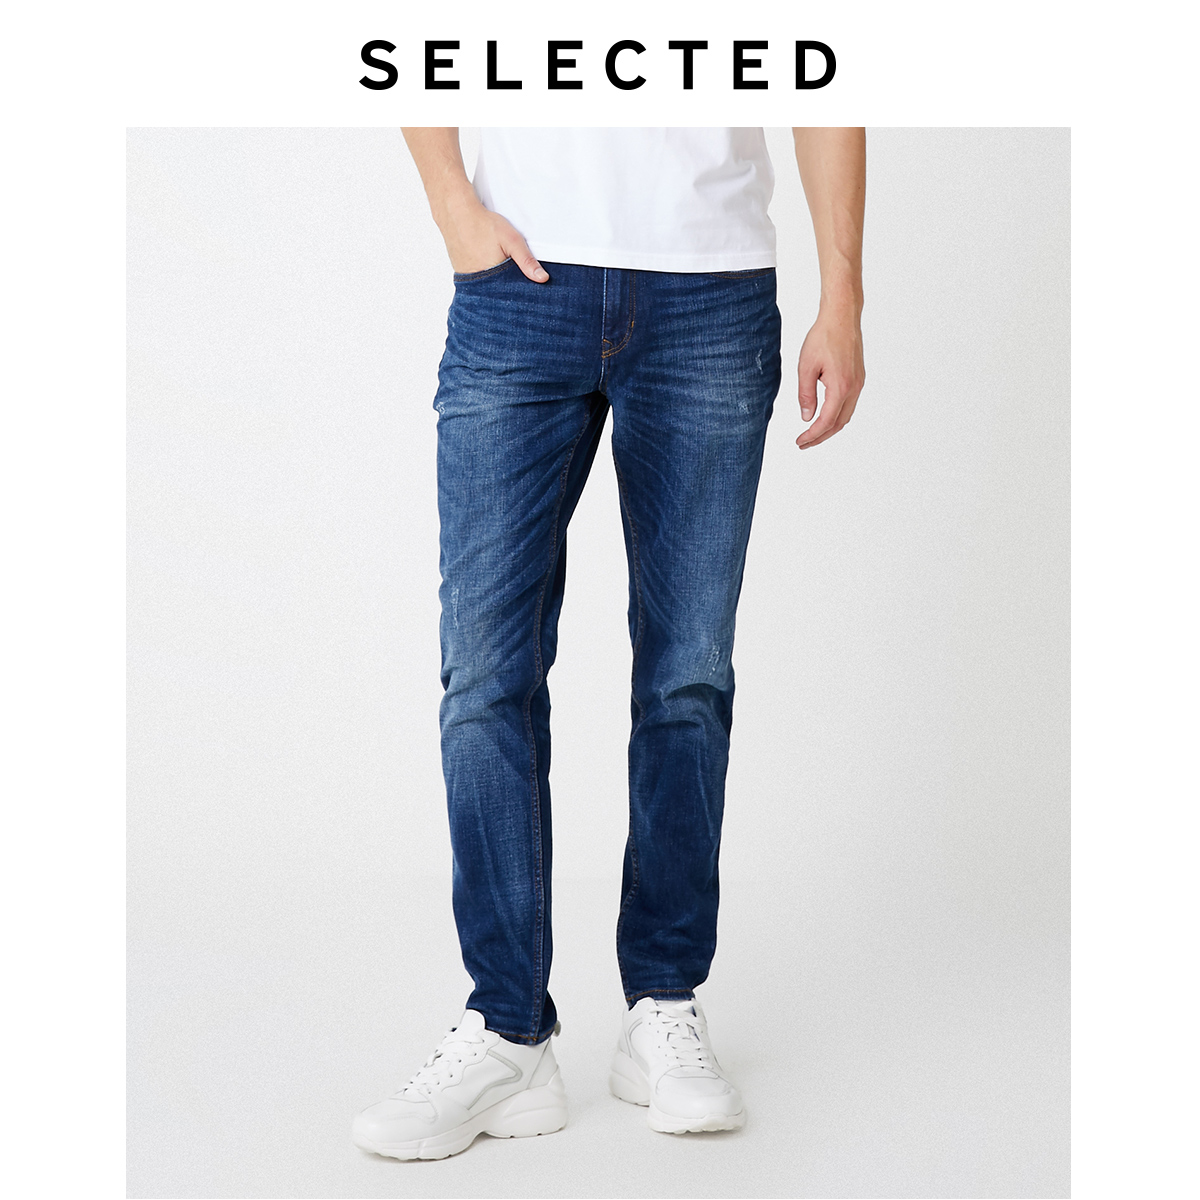 SELECTED Men's Distressed Ripped Tight-leg Jeans S|419332508